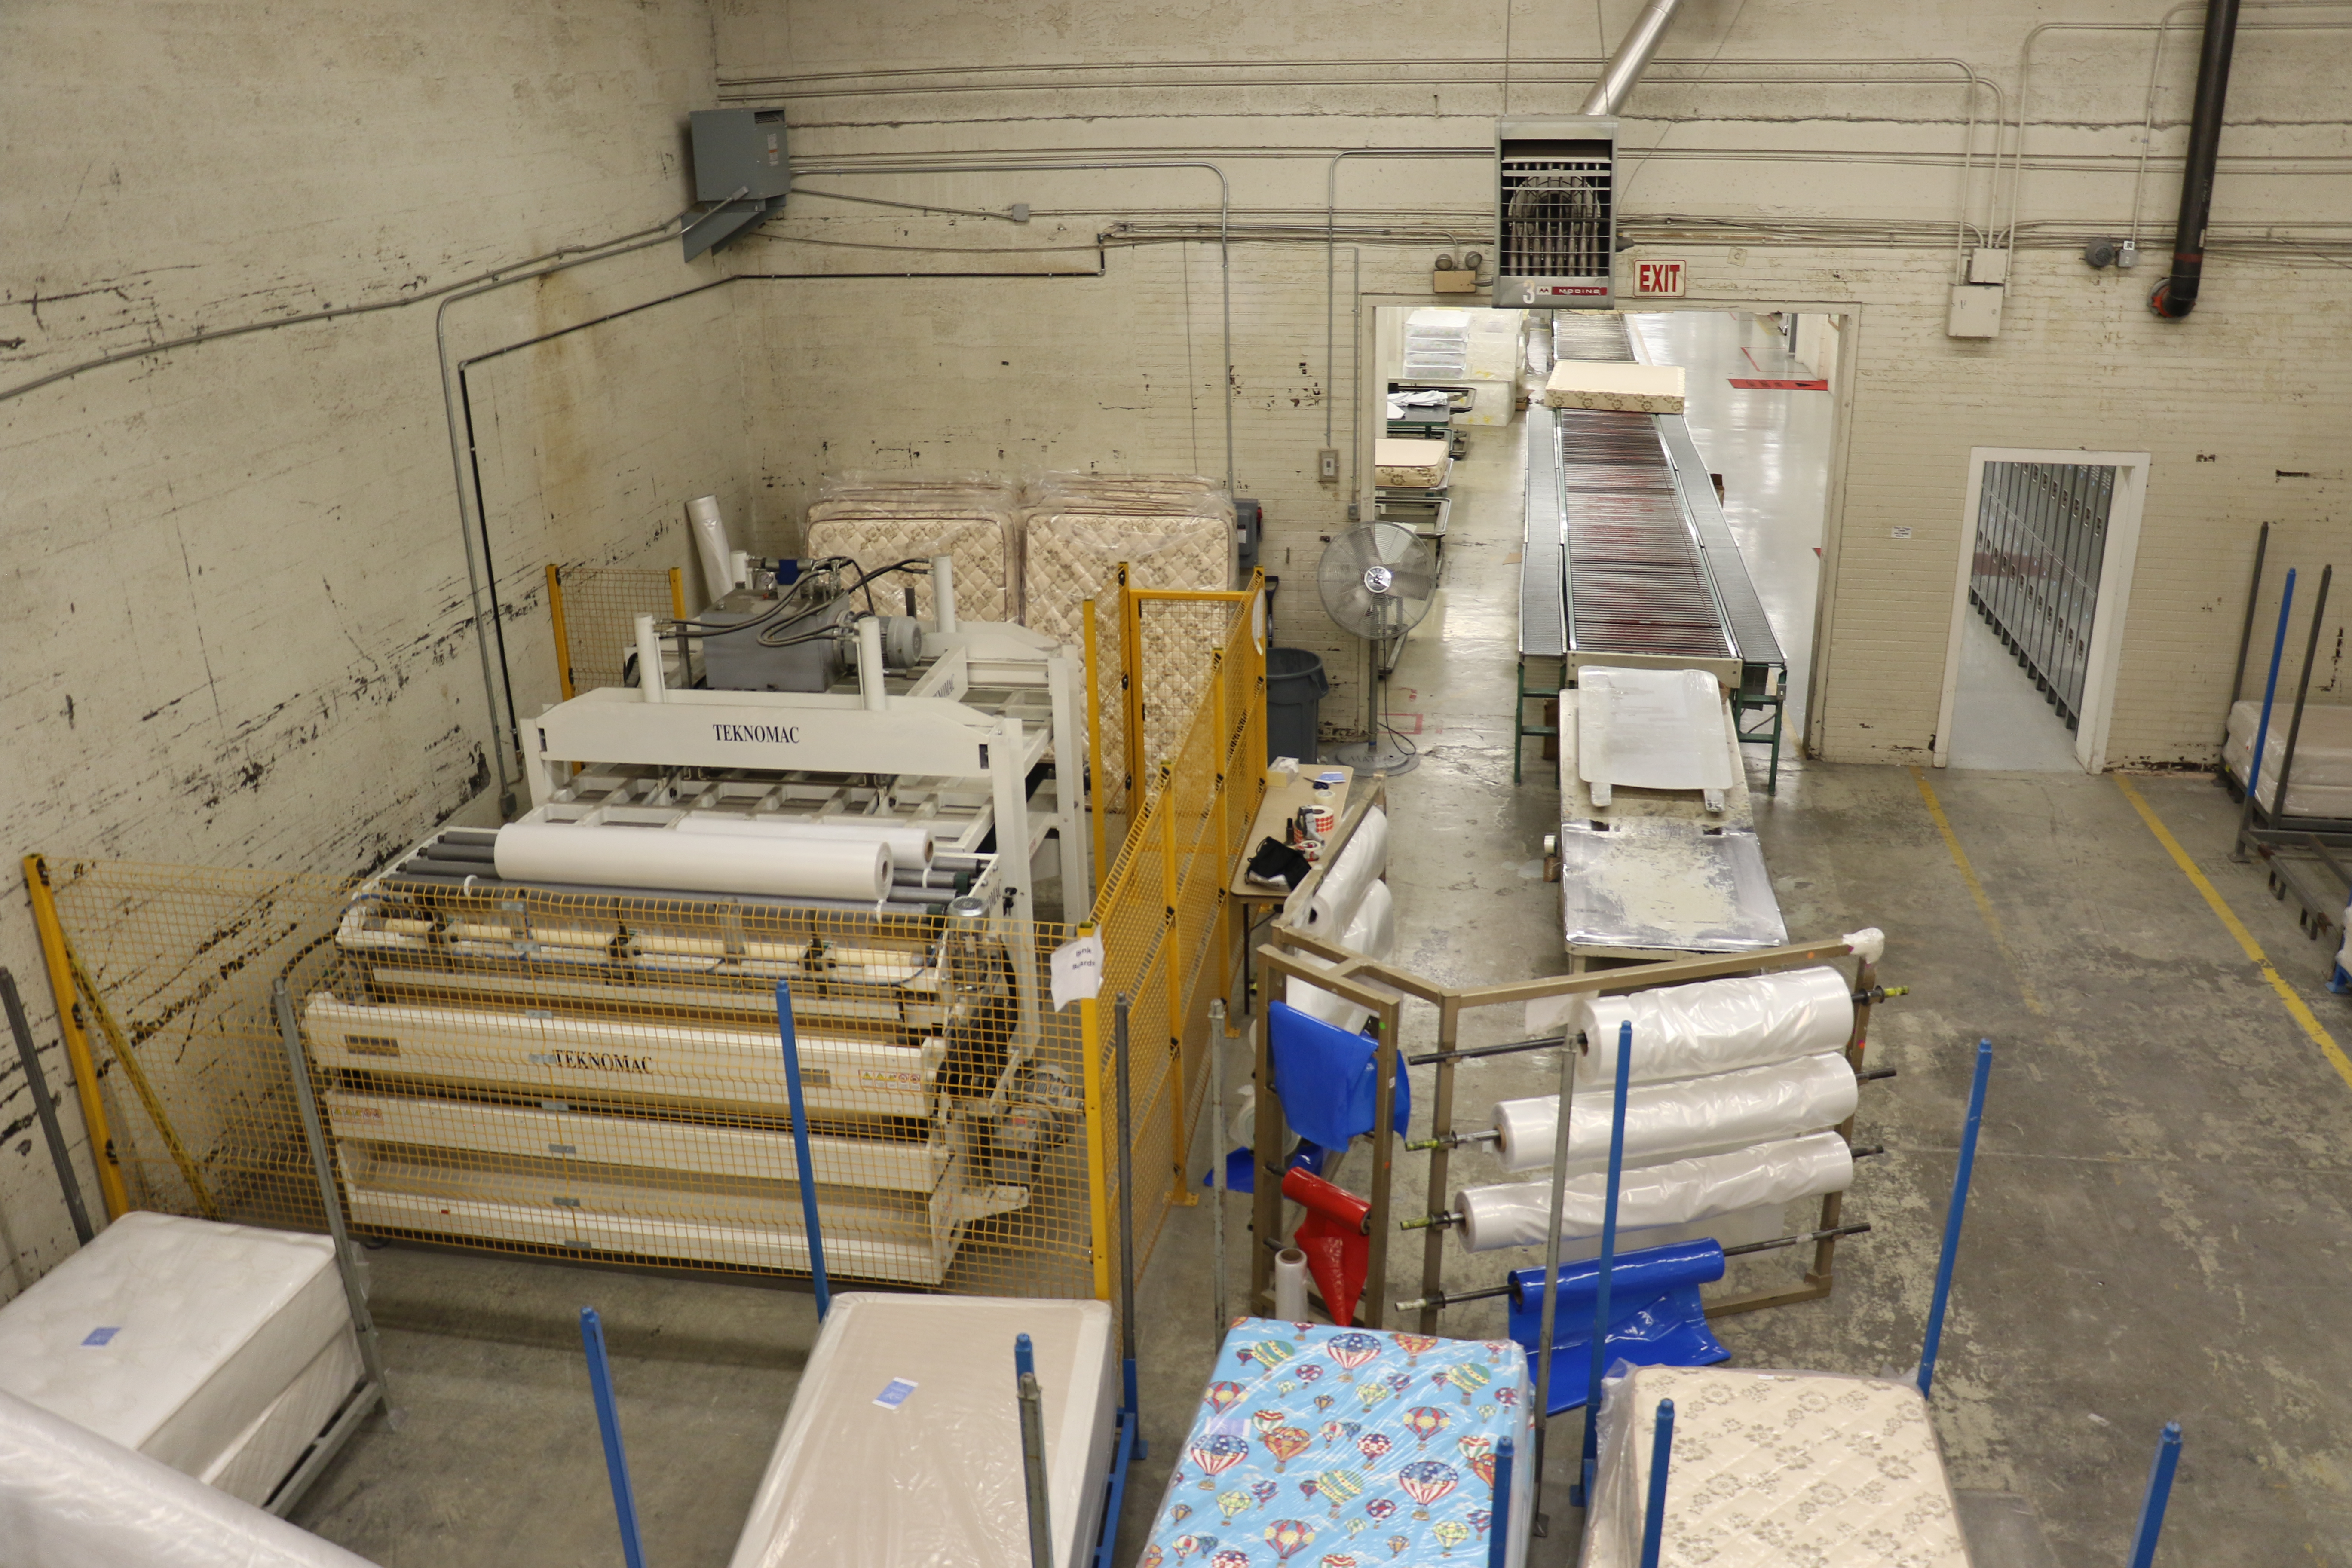 Mattresses made at the Deseret Manufacturing facility in Salt Lake City, Utah are sold through Deseret Industries.